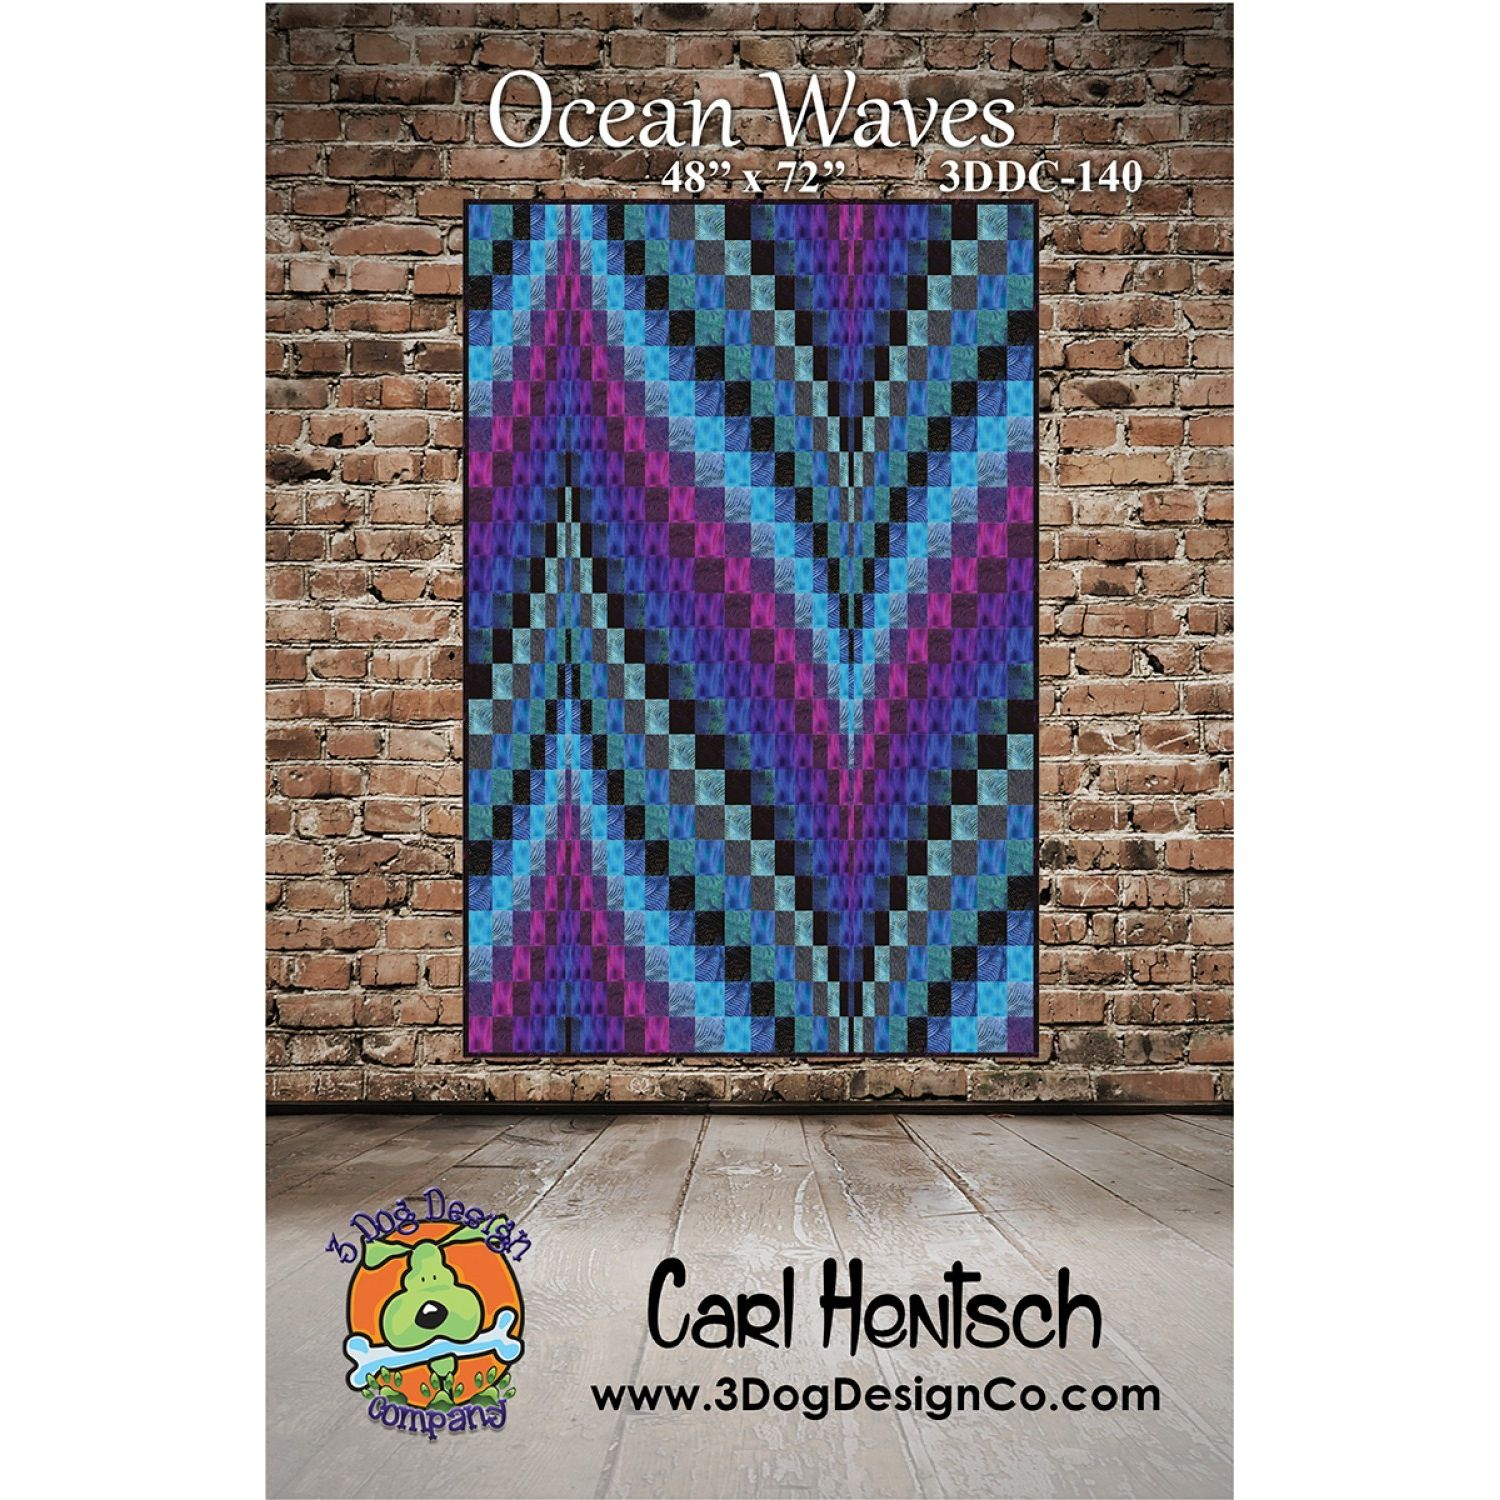 Ocean Waves Quilt Pattern By 3 Dog Design Company